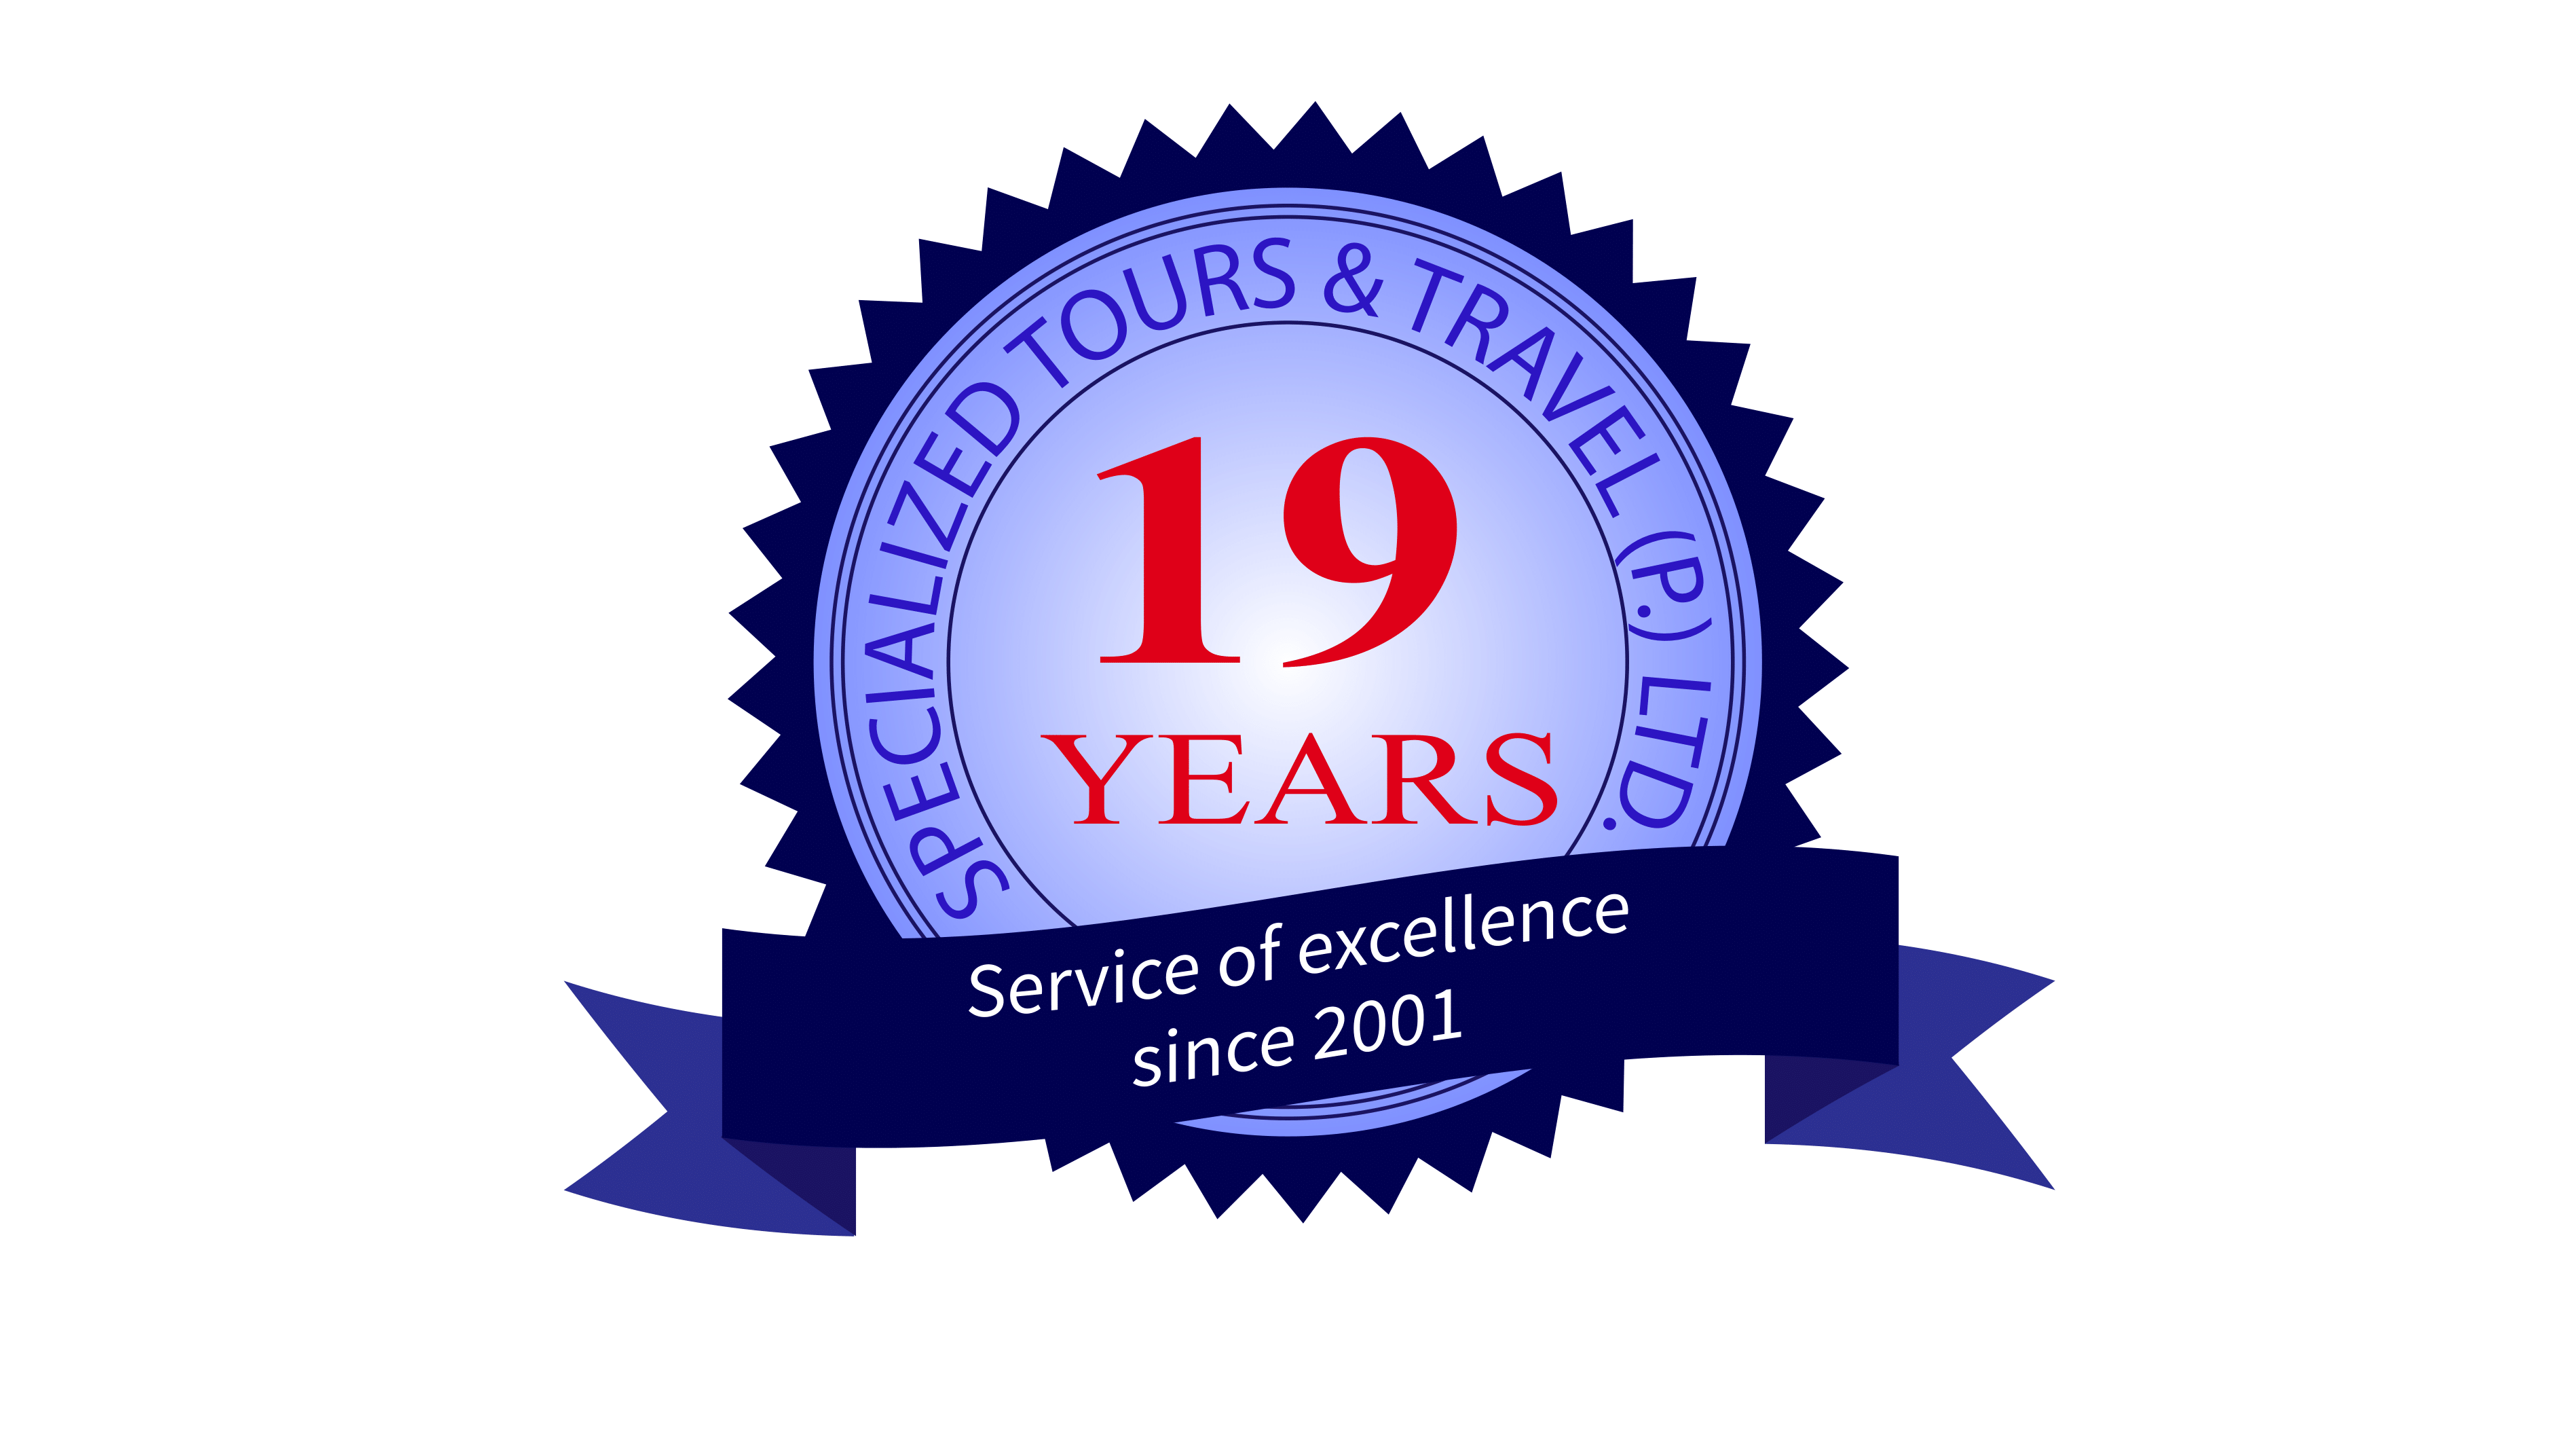 Service of Excellence since 2001